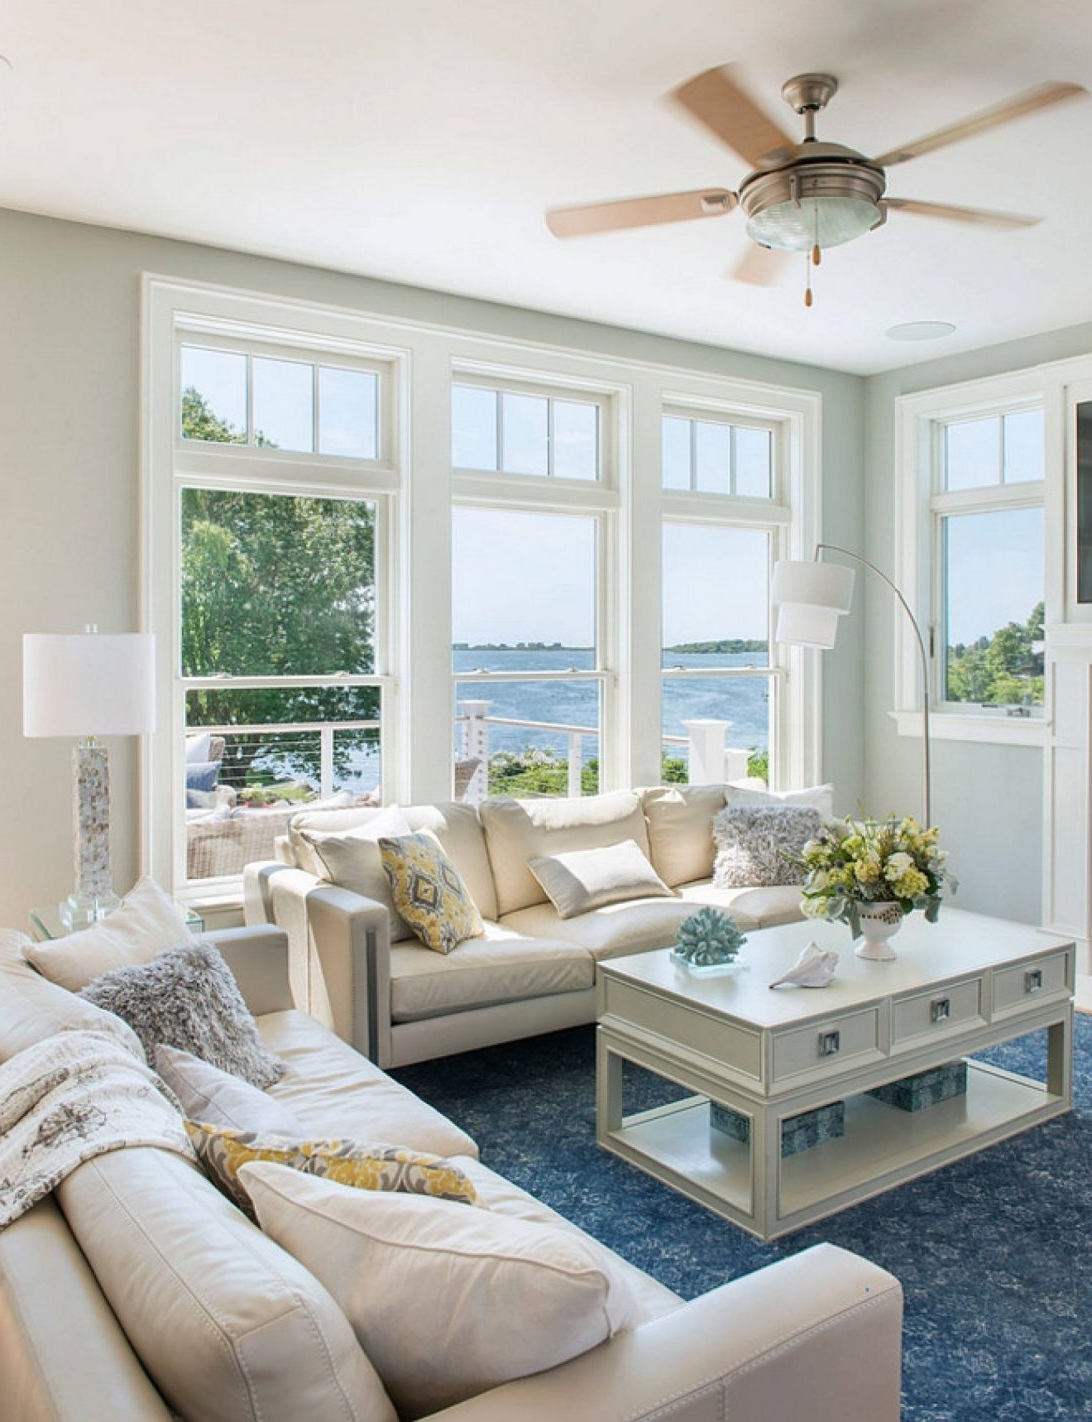 Preferred Coastal Living Room Table Lamps Throughout Beach Themed Floor Lamps Unique Nautical Coastal Living Room Ideas (View 2 of 15)